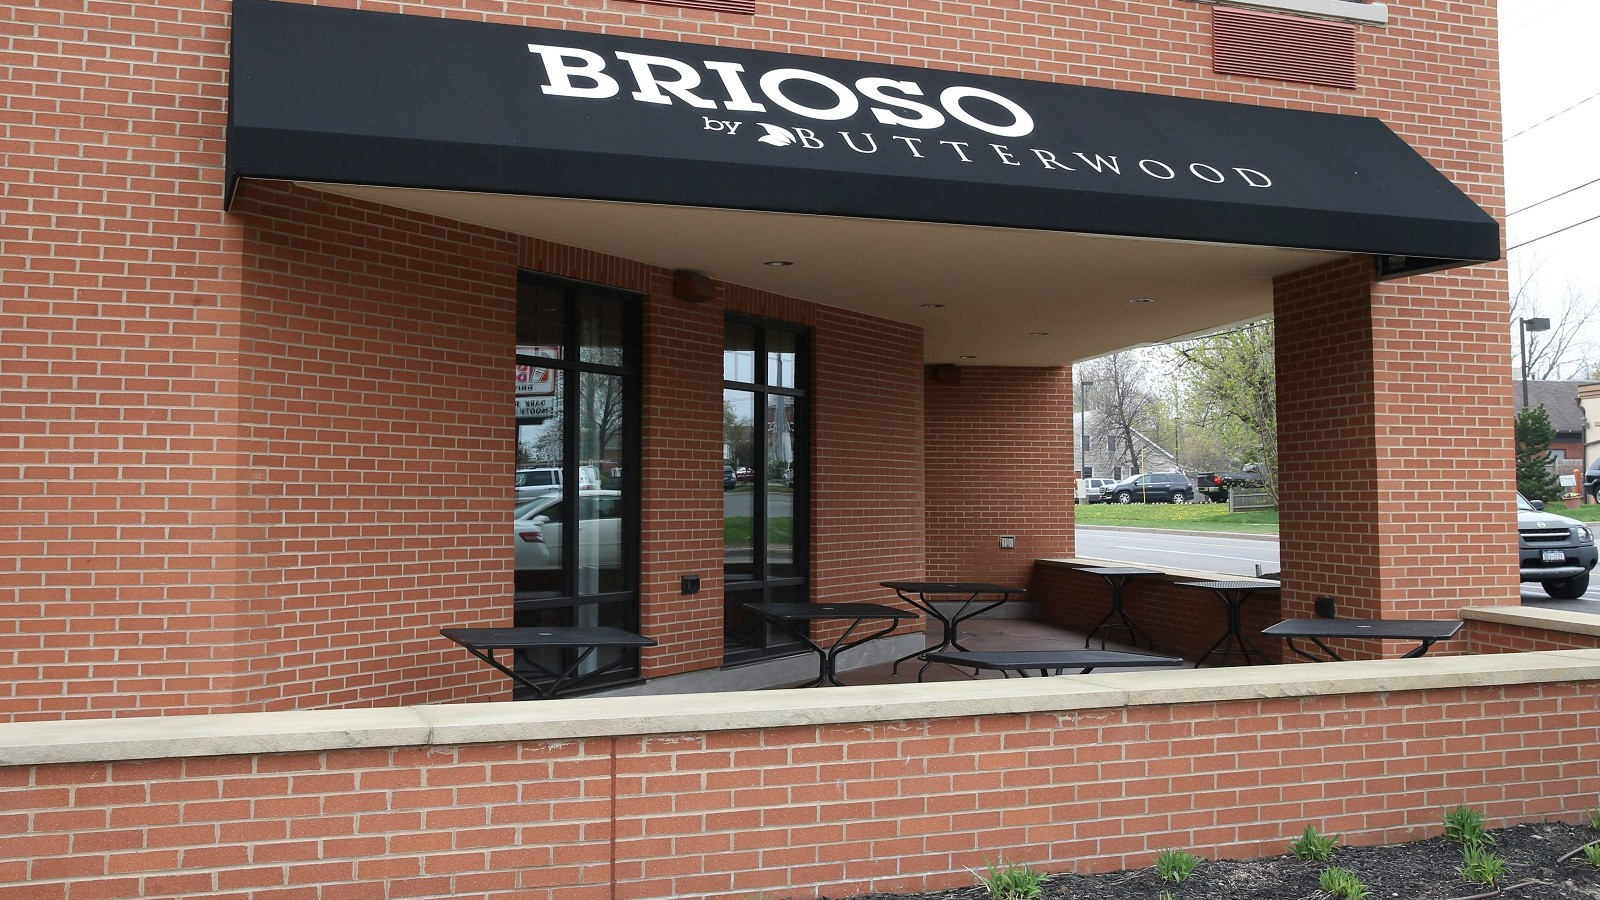 Both Butterwood locations, Brioso by Butterwood in Williamsville and Butterwood Sweet and Savory inside the Hotel @ the Lafayette, are closed. (Sharon Cantillon/Buffalo News file photo)